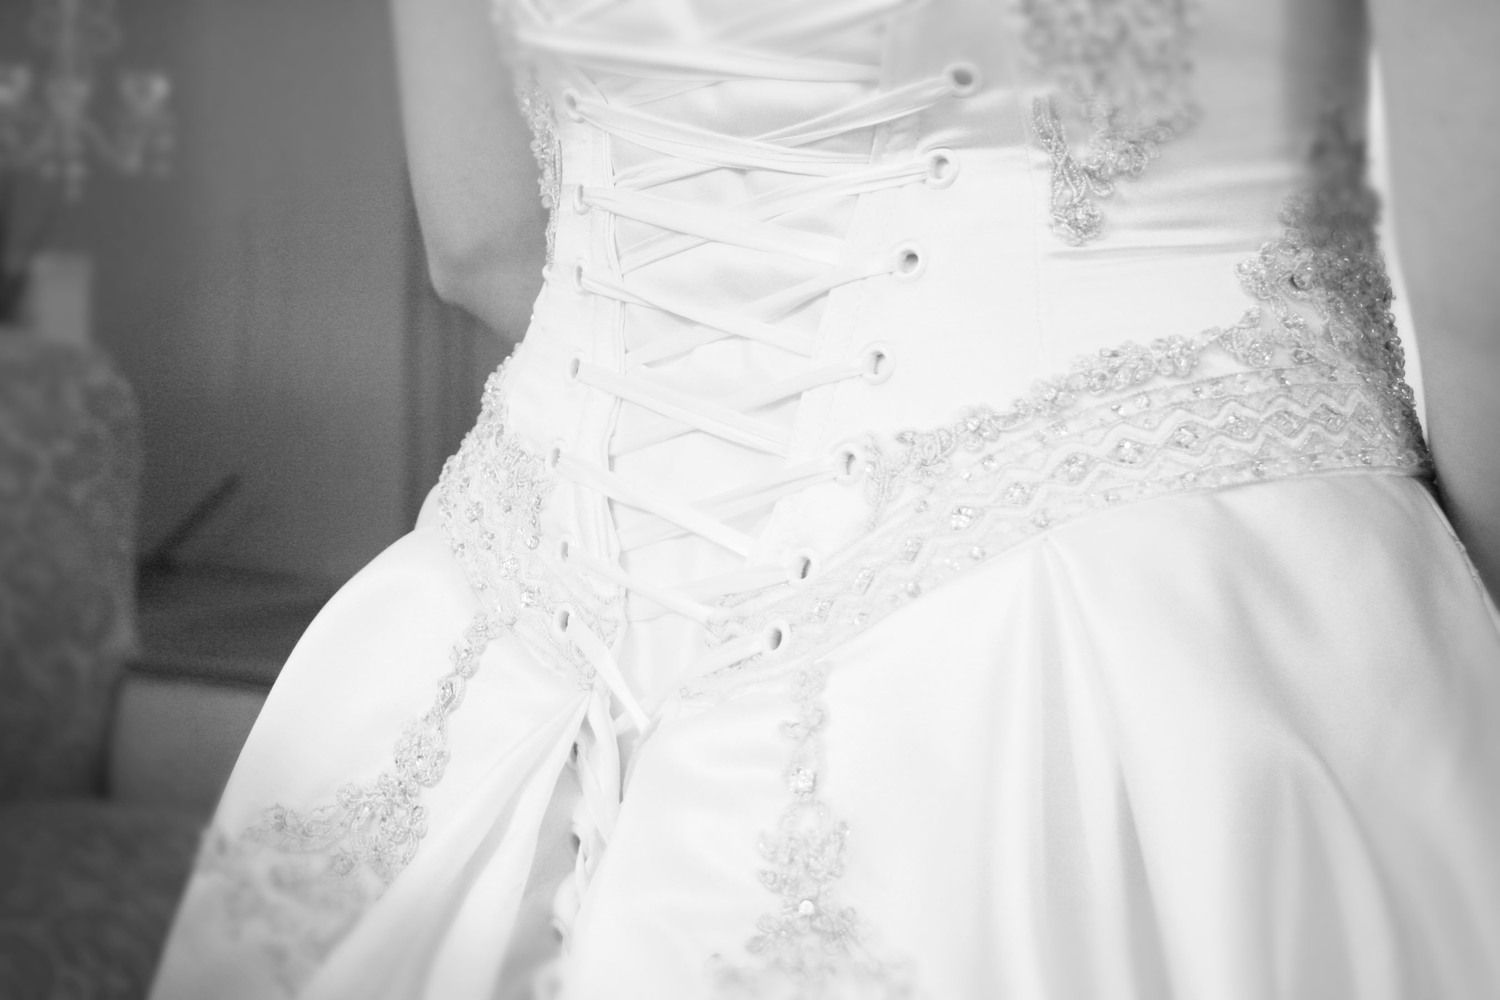 How much to alter wedding dress  The Gilded Thimble Bedford VA  Sewing  Pinterest  Corset Dress